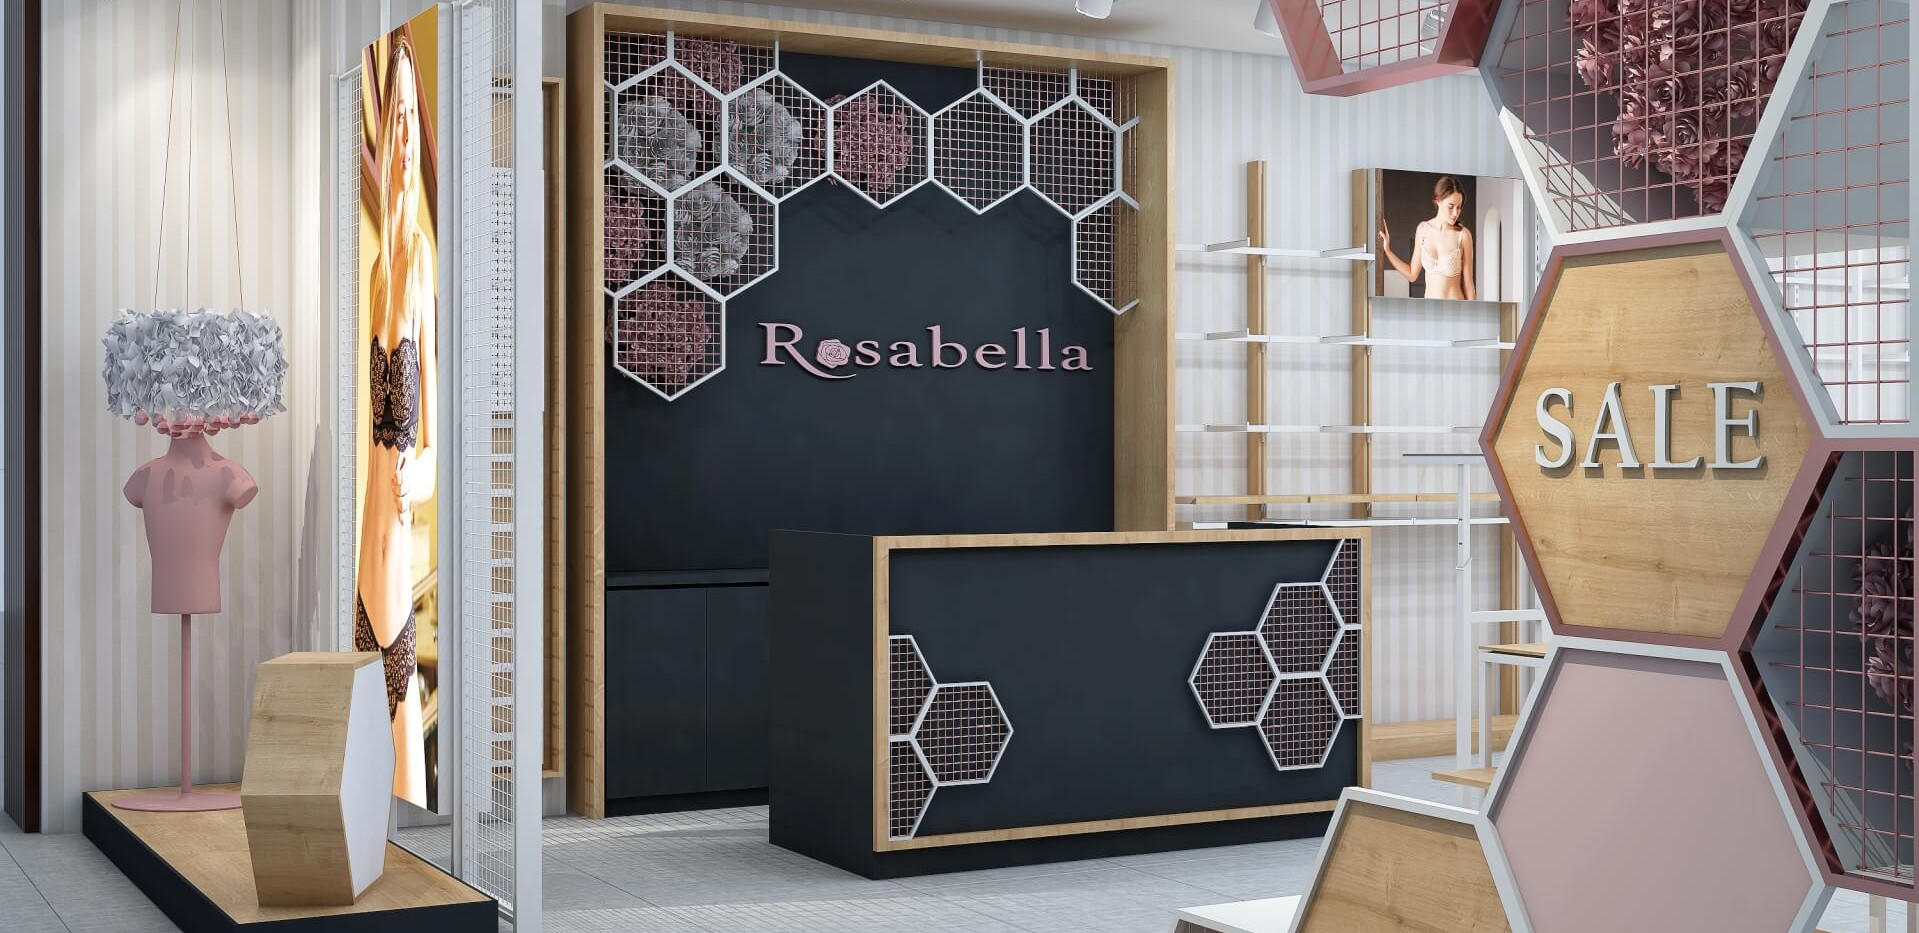 Rosabella - Fashion Store Shop Design-1.